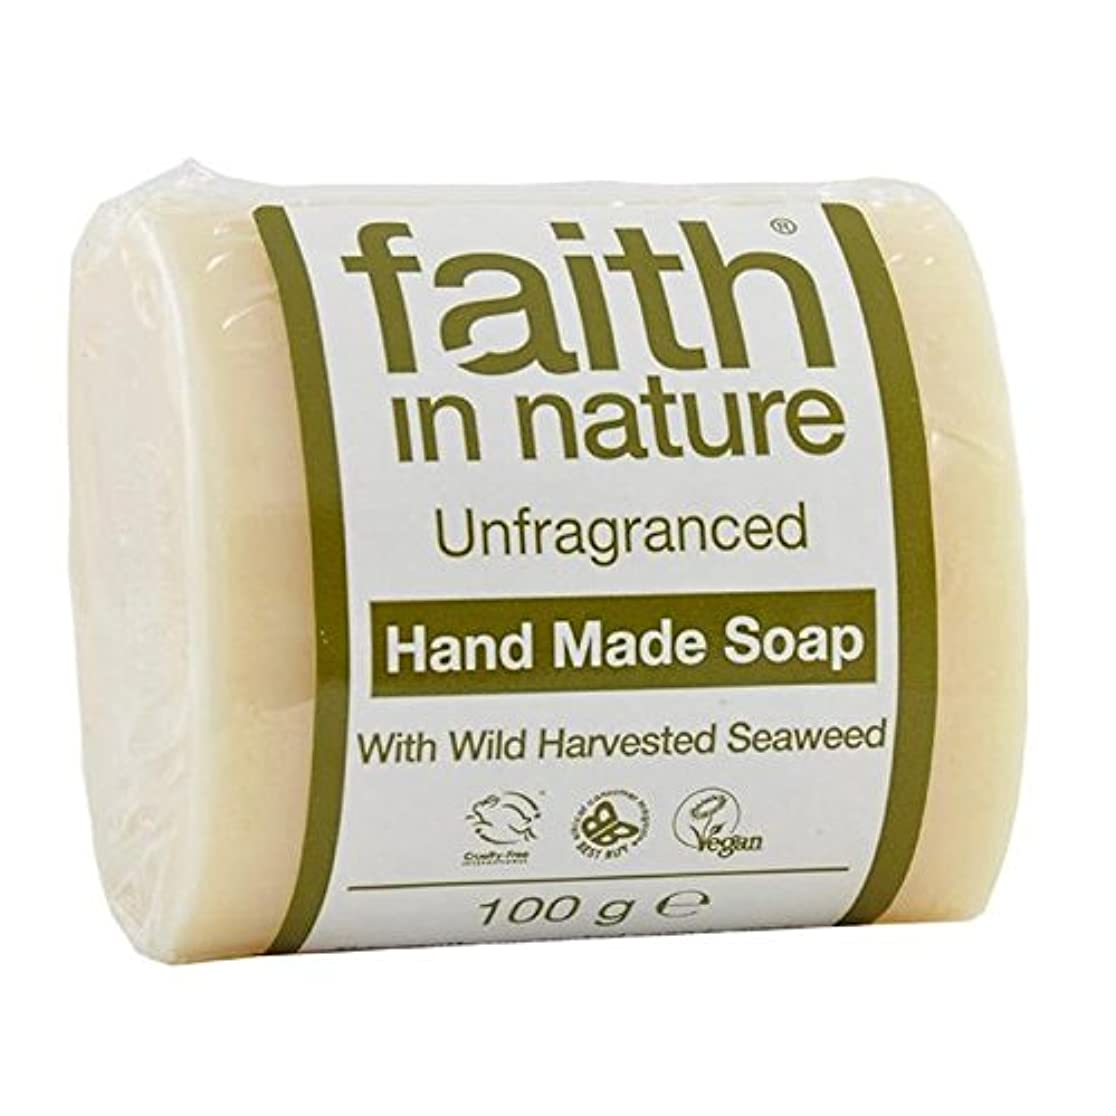 Faith in Nature Unfragranced Pure Hand Made Soap 100g (Pack of 4) - (Faith In Nature) 自然の中で信仰は純粋な手作り石鹸100グラムを無香料...